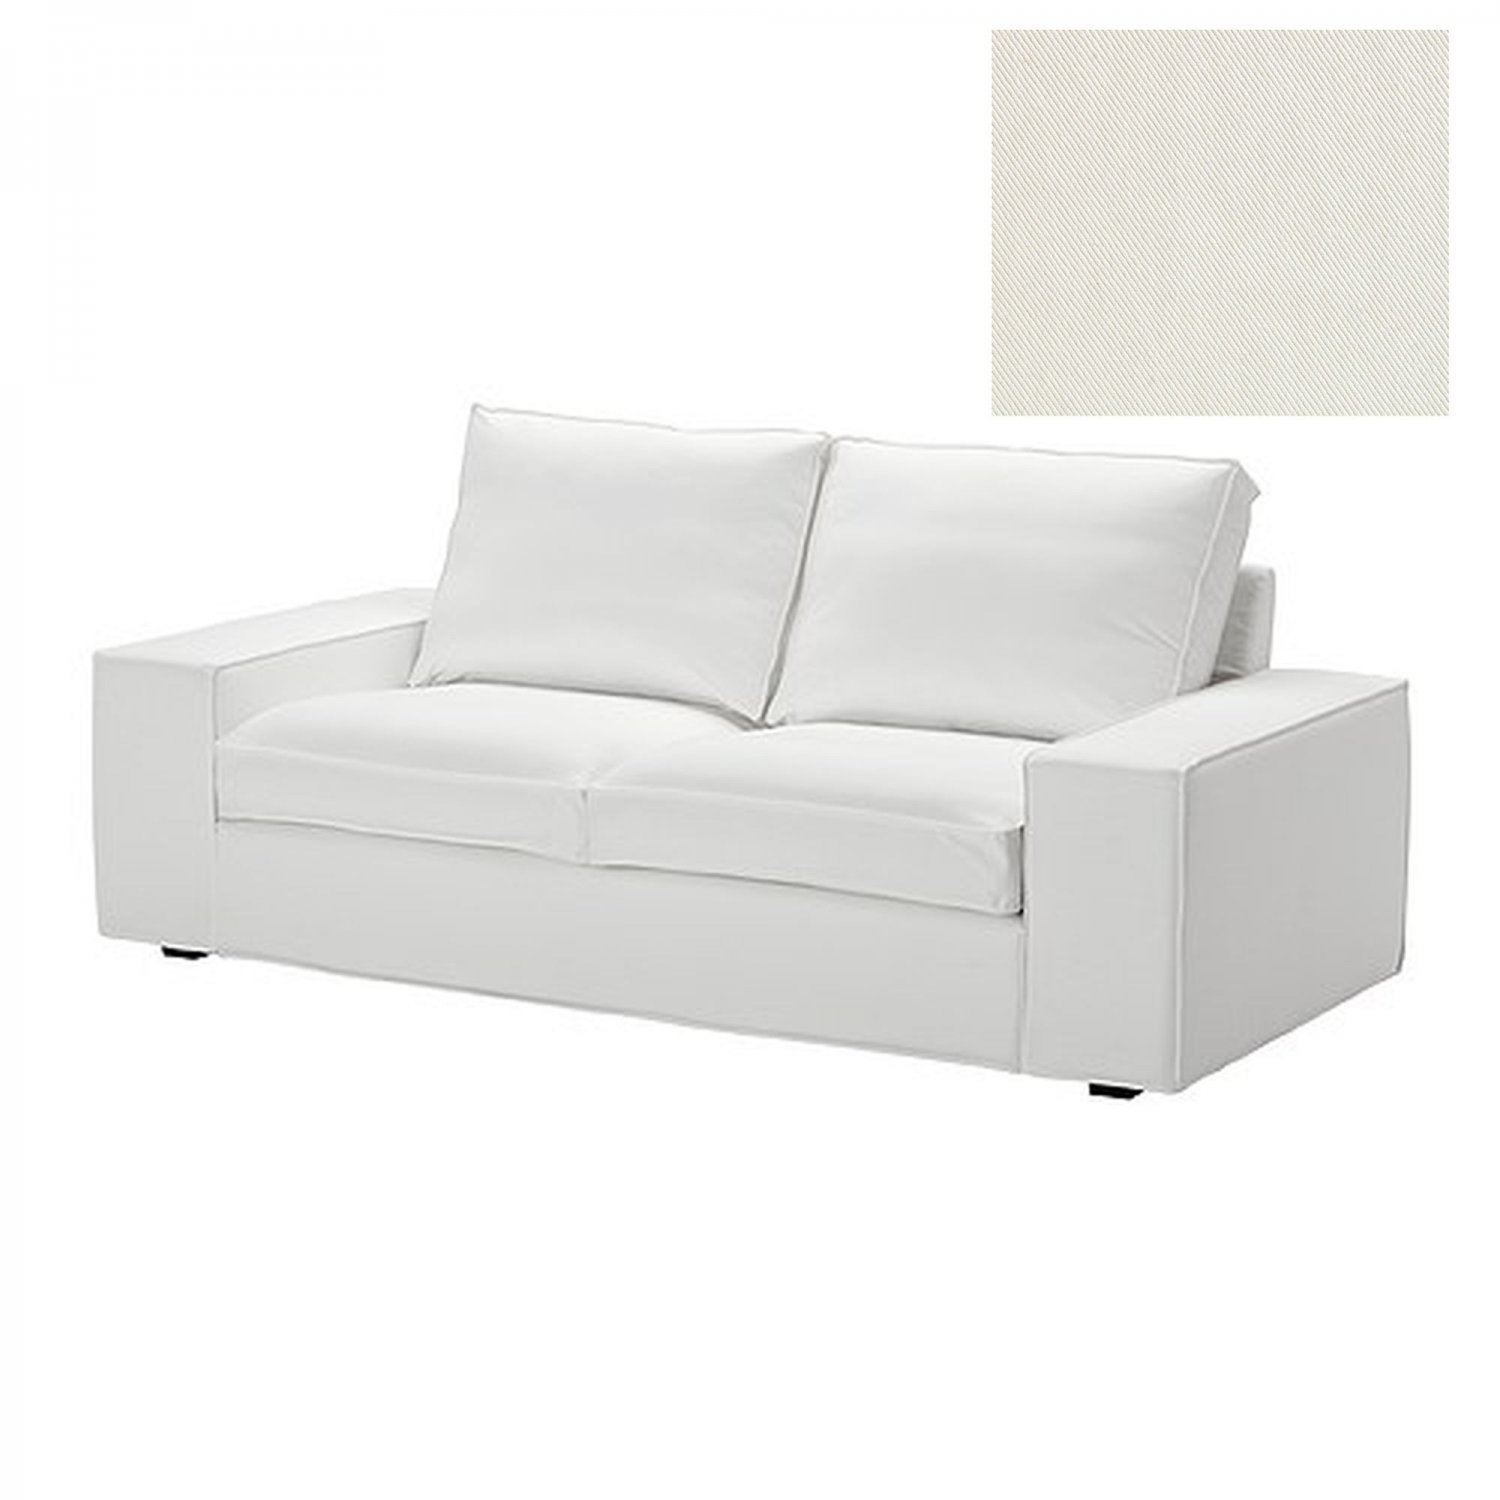 white sofa slipcover cotton rooms to go cindy crawford sleeper reviews ikea kivik 2 seat loveseat cover blekinge